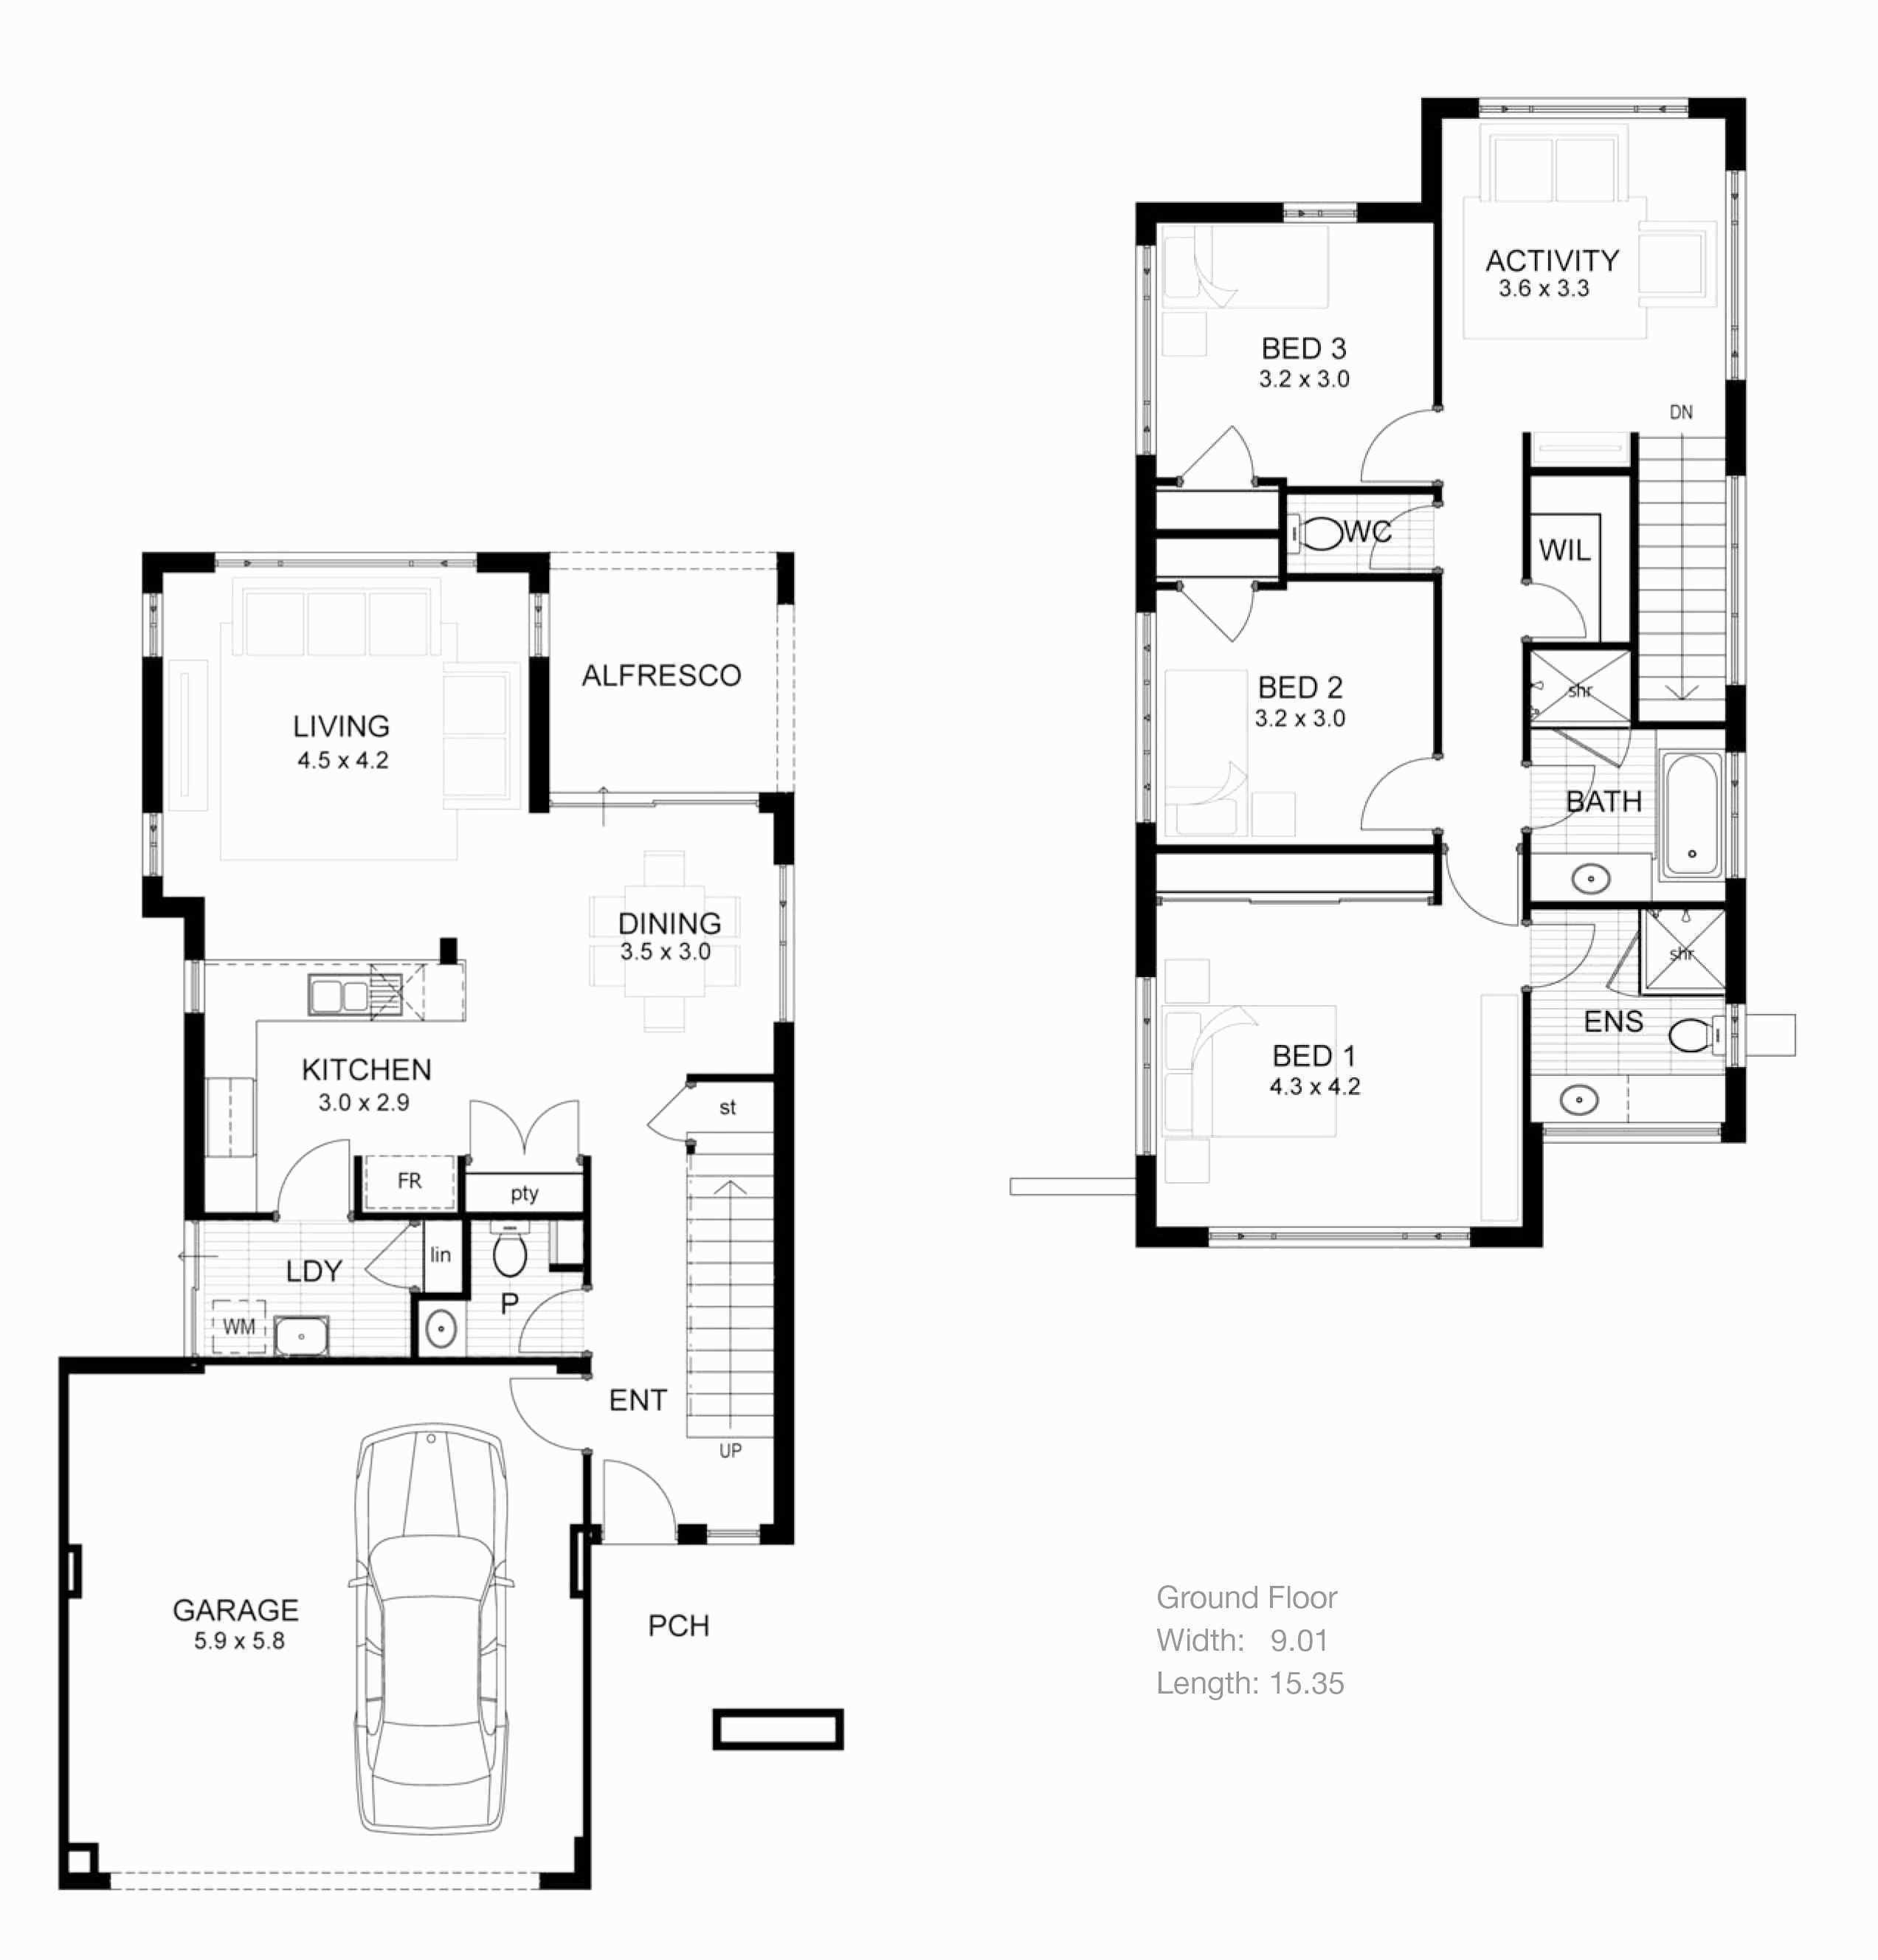 Clubhouse Floor Plan Design Floor Plan Design Bedroom Floor Plans House Plans